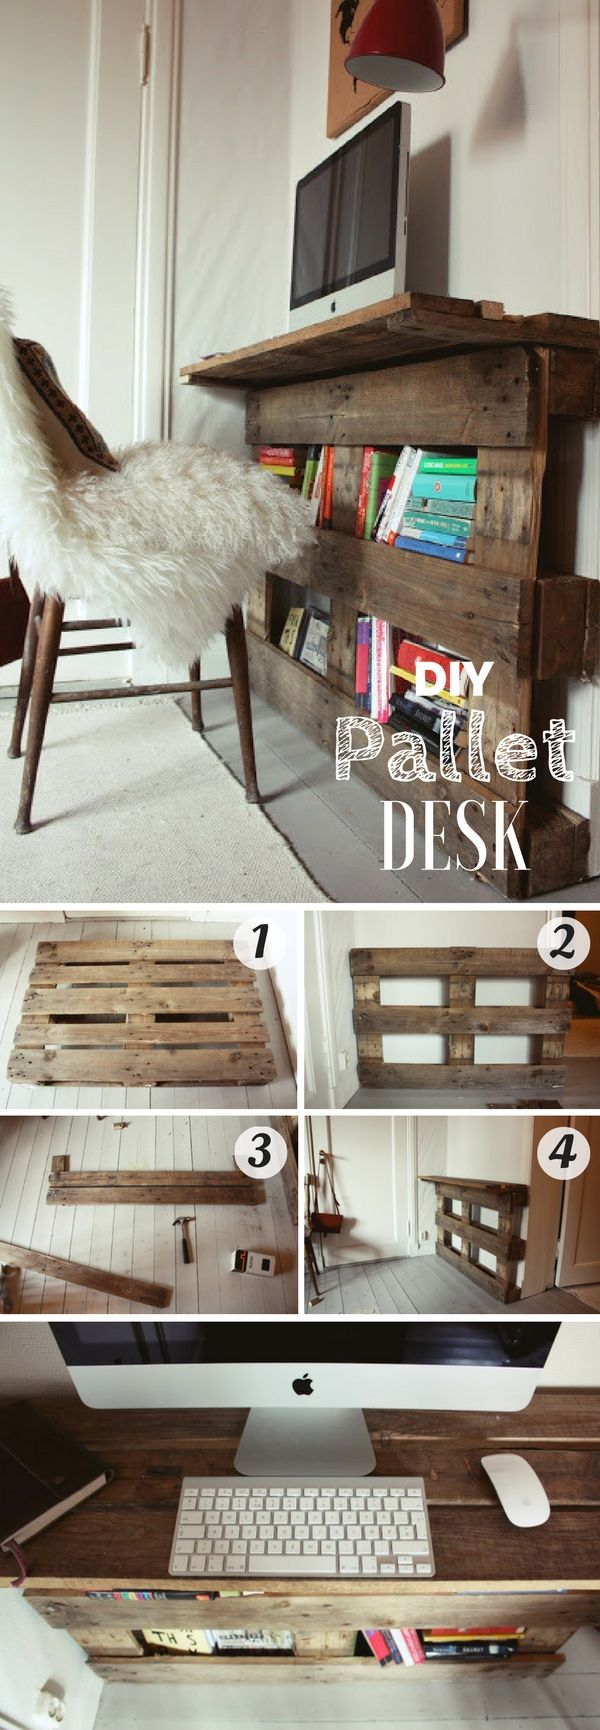 15 Incredible Do It Yourself Pallet Ideas - Diy & Crafts Ideas Magazine